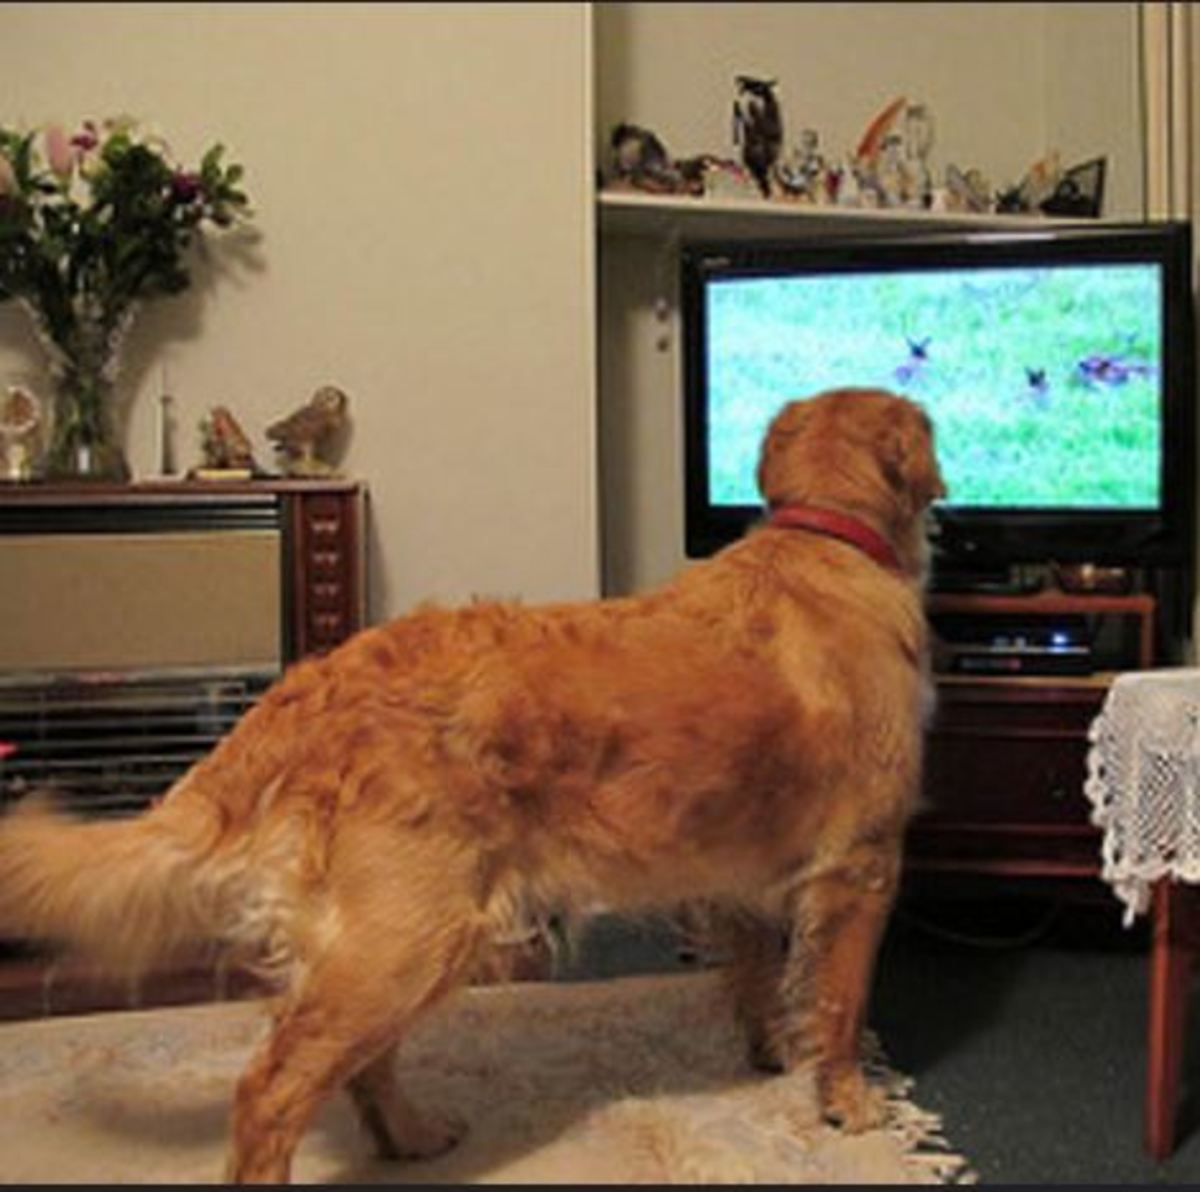 Dogs can see TV. Scrabbles goes crazy whenever there are animals on screen.